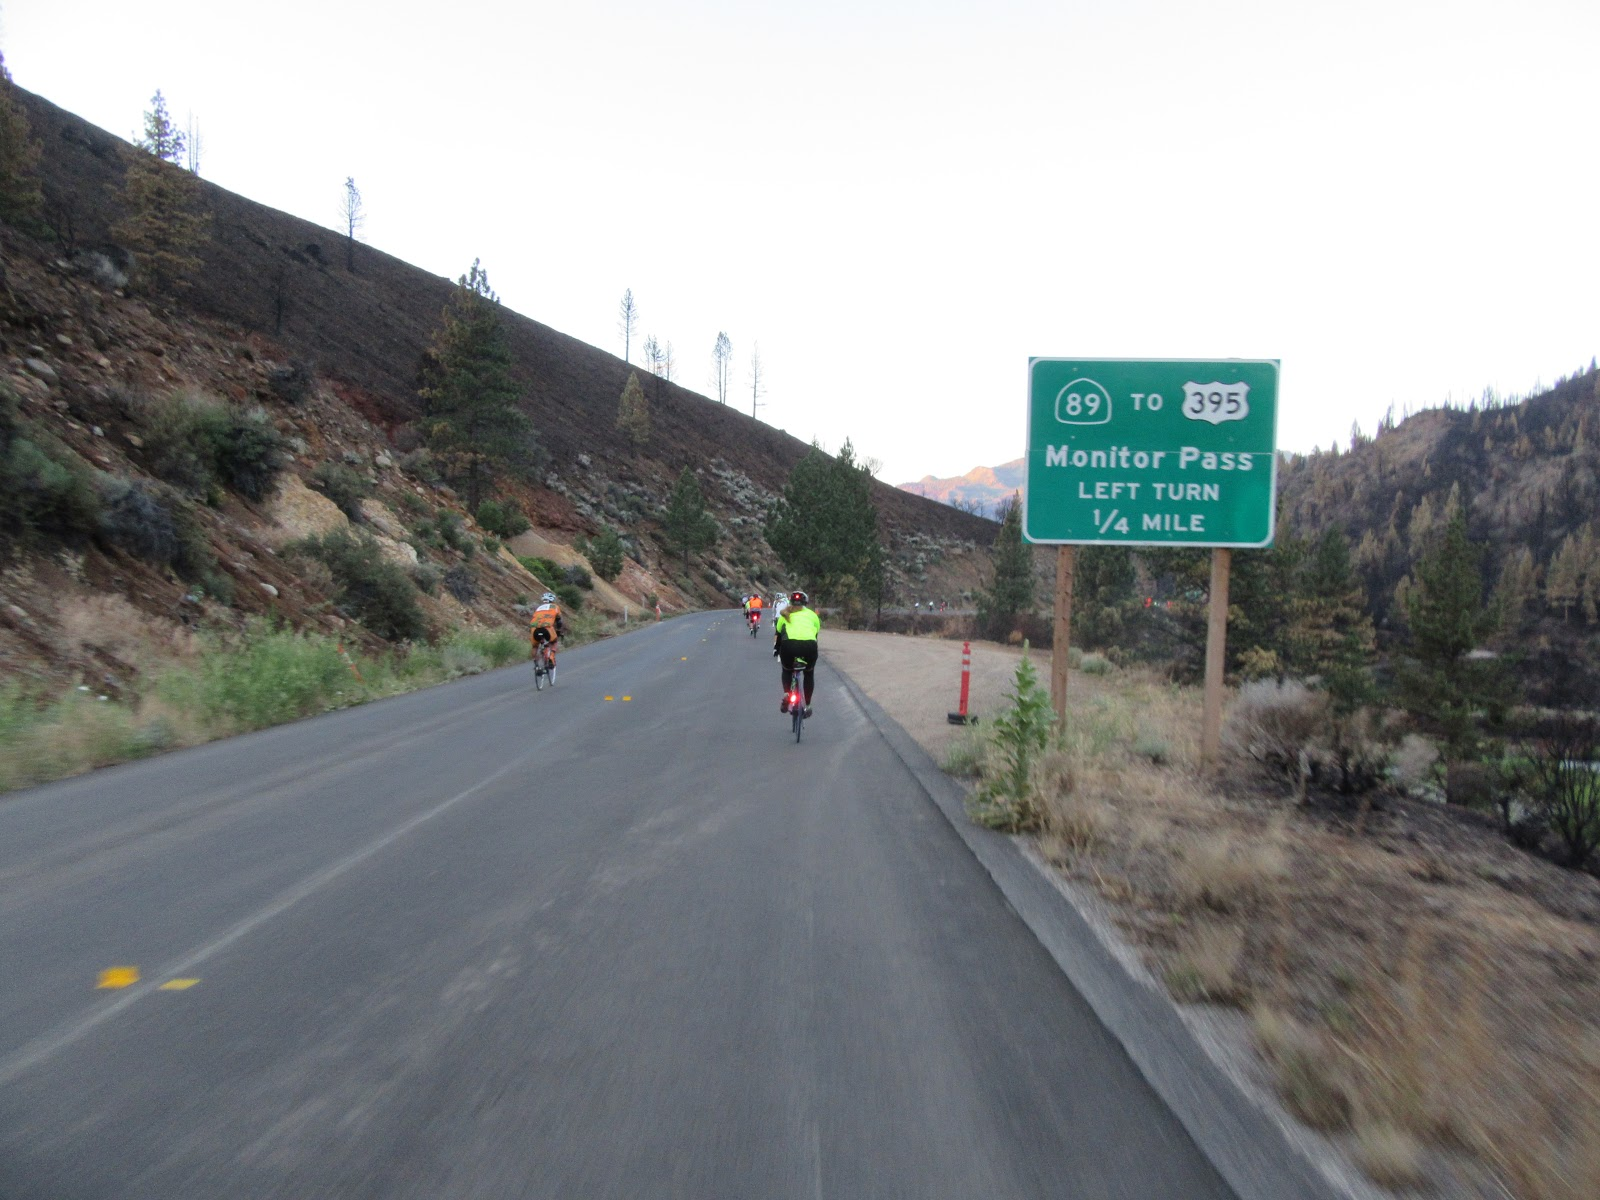 Cycling Monitor Pass West - beginning of climb - Death Ride - cyclists and Monitor East and West road sign